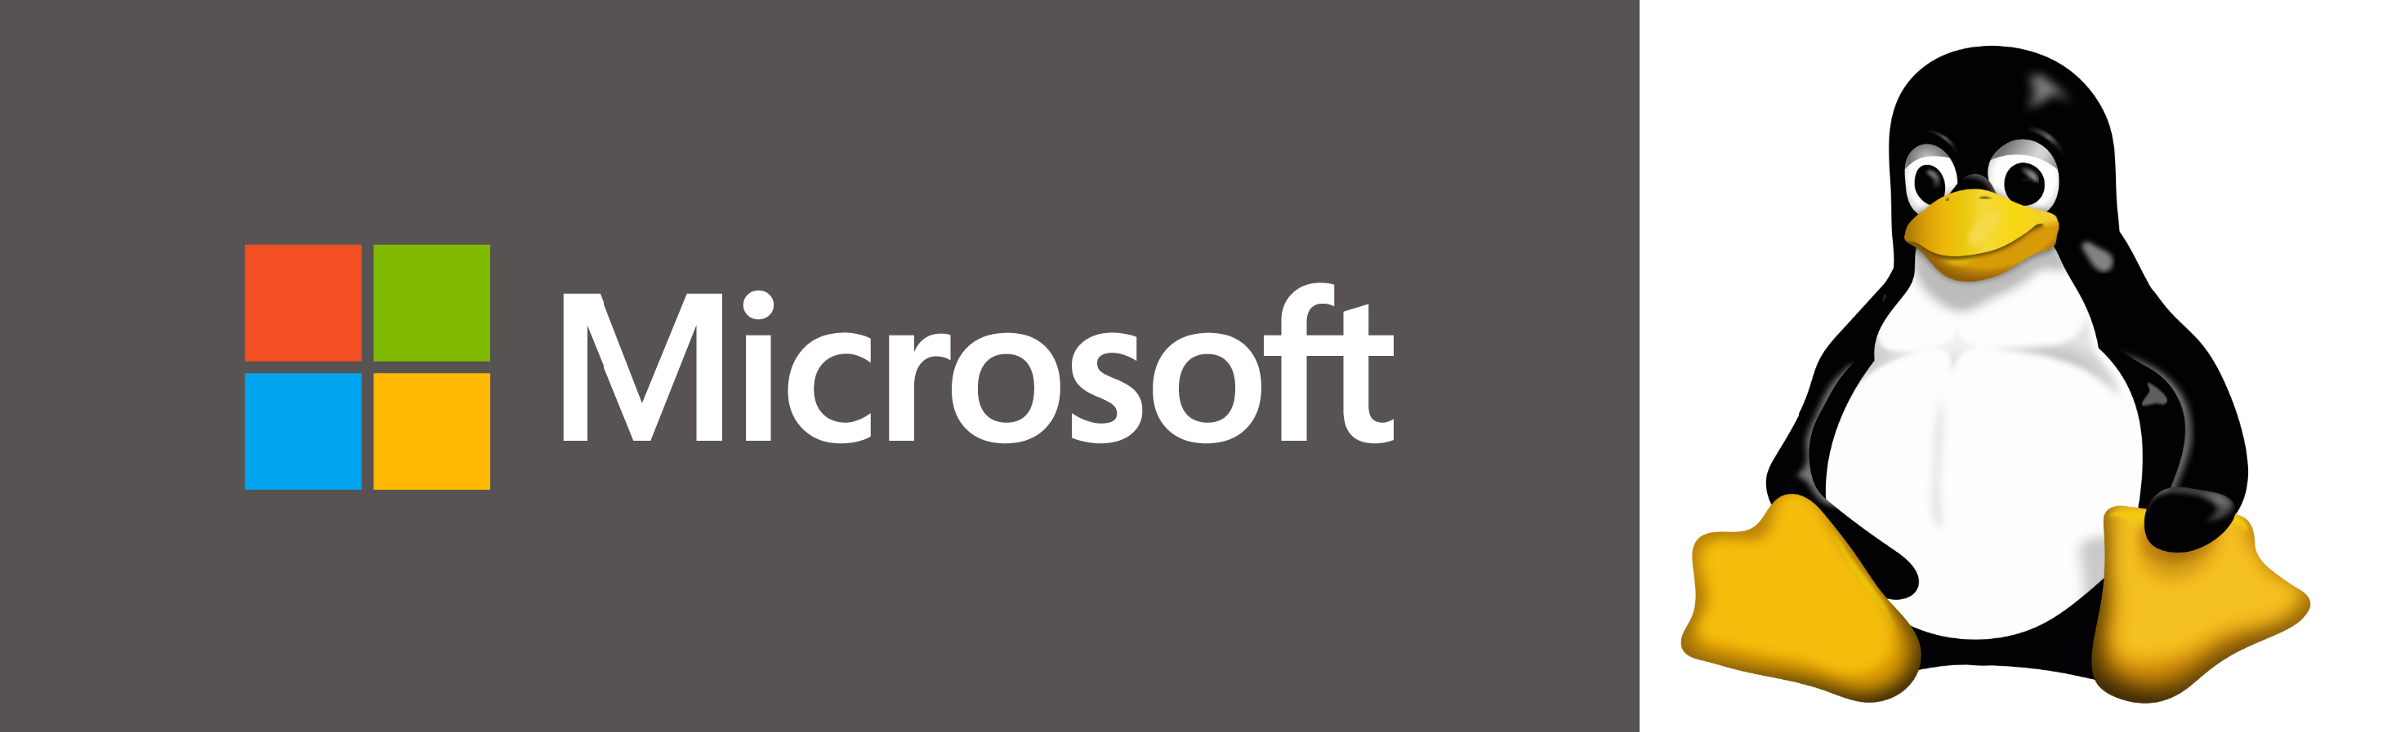 /did-microsoft-really-just-open-source-all-its-patents-3e419ae1a439 feature image